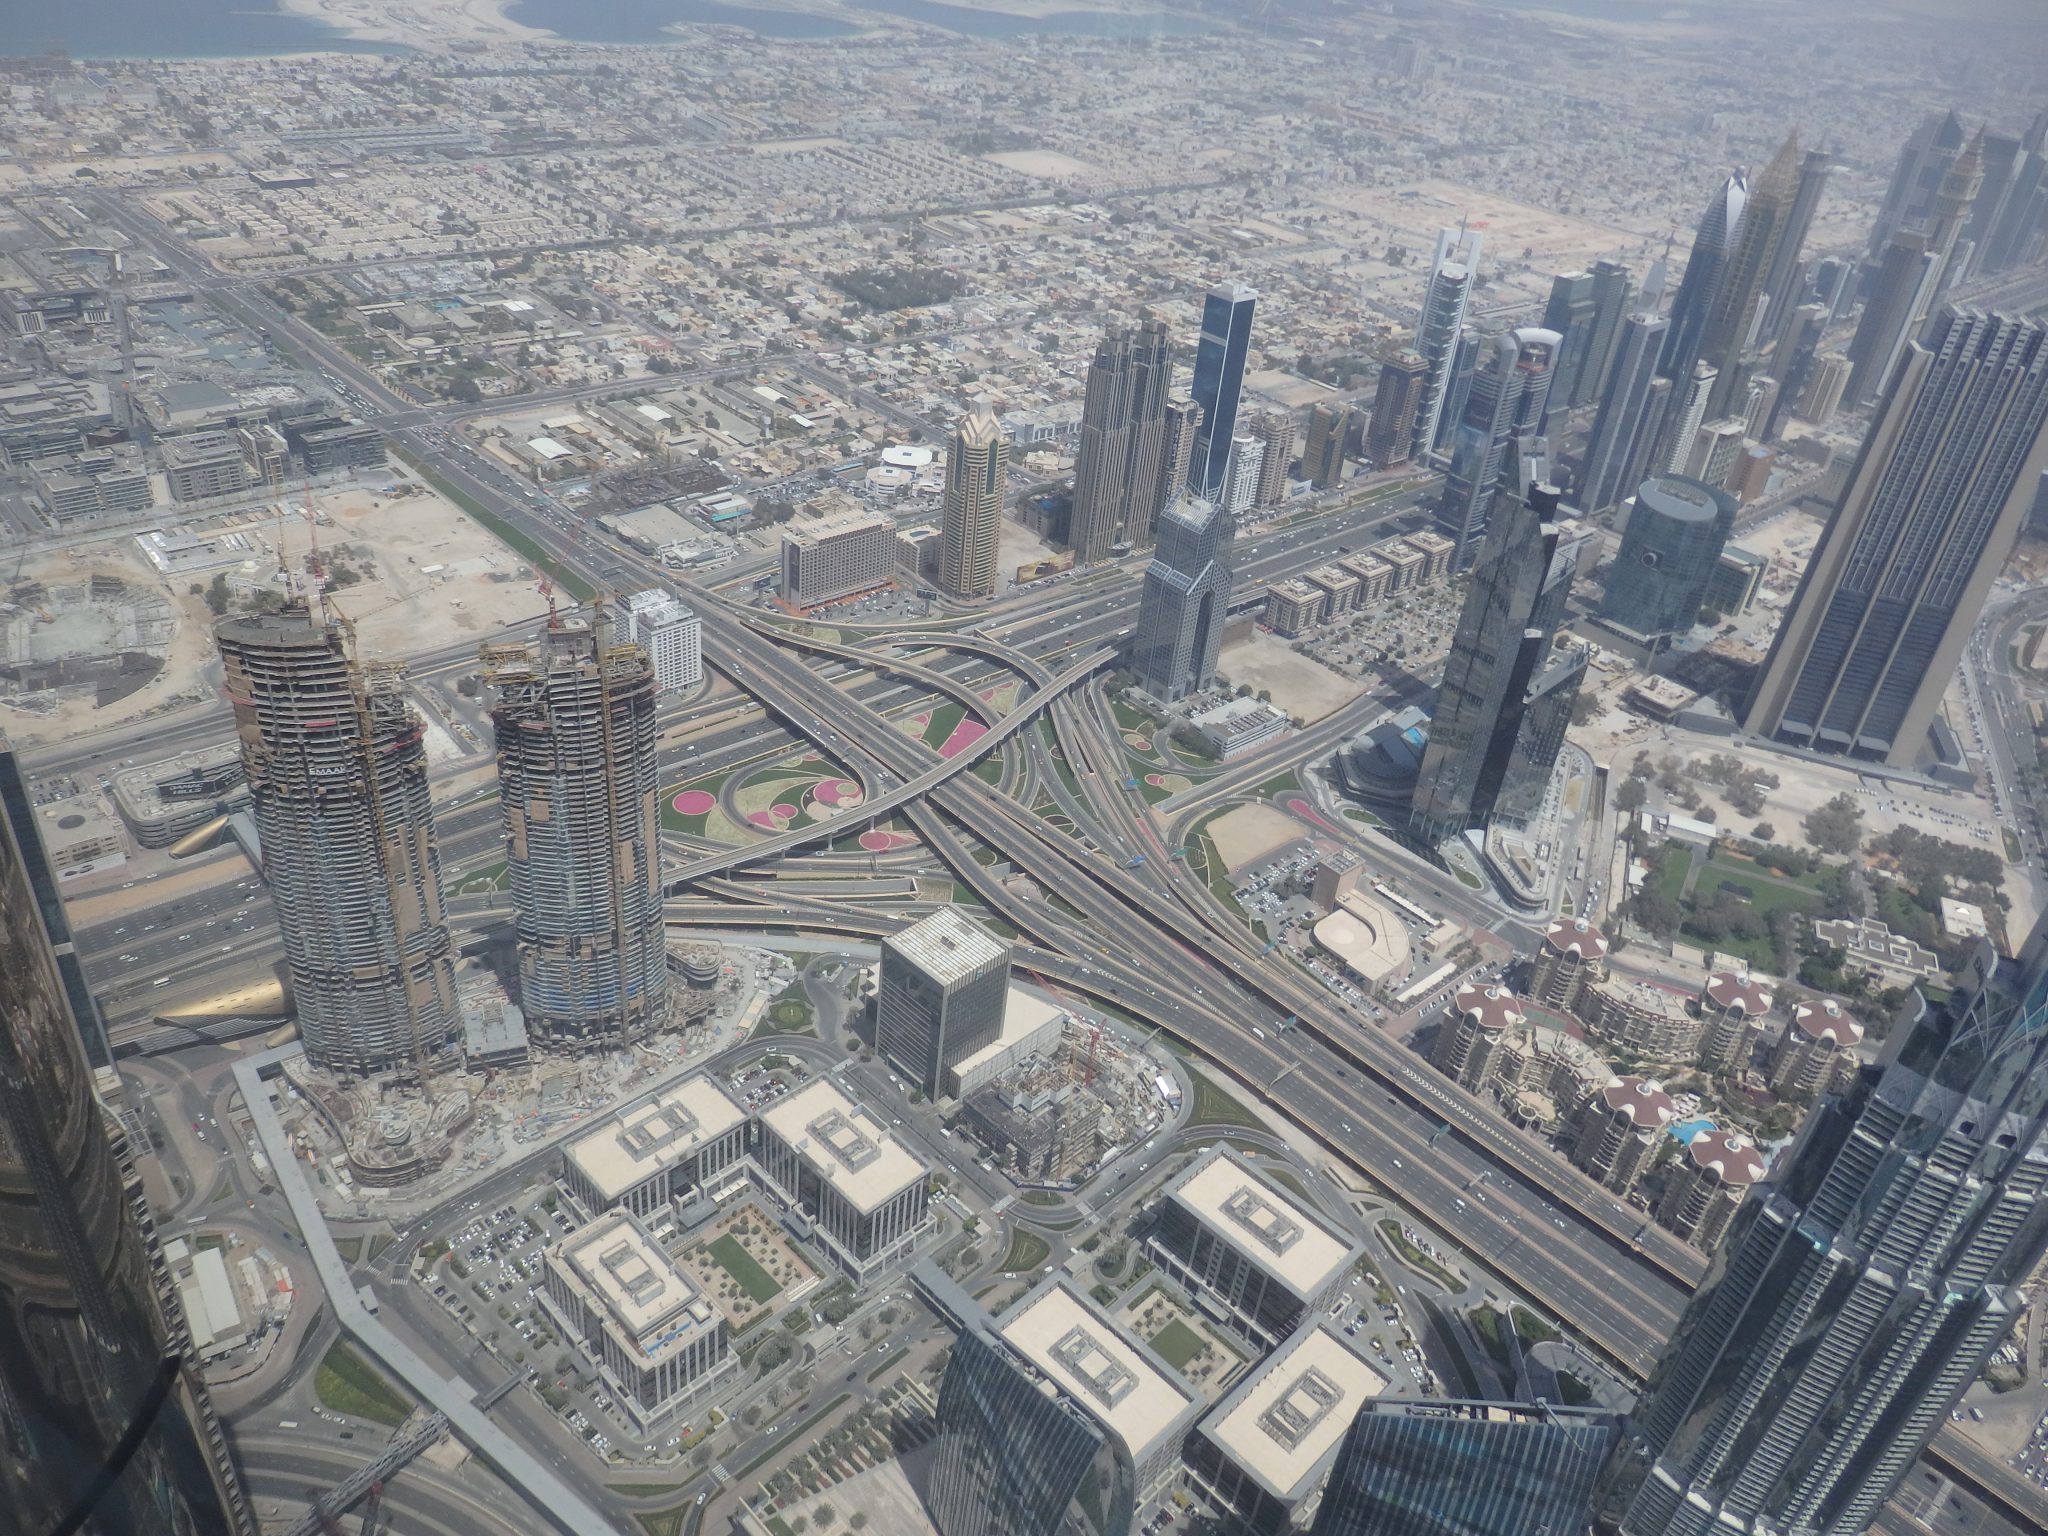 If you look on the left side of this picture, beyond the two towers under construction, you'll see a patch of vacant land, a common sight all over Dubai. Around the highway junction, you can see the carefully-tended greenery that must take an enormous amount of water. Visiting Burj Khalifa